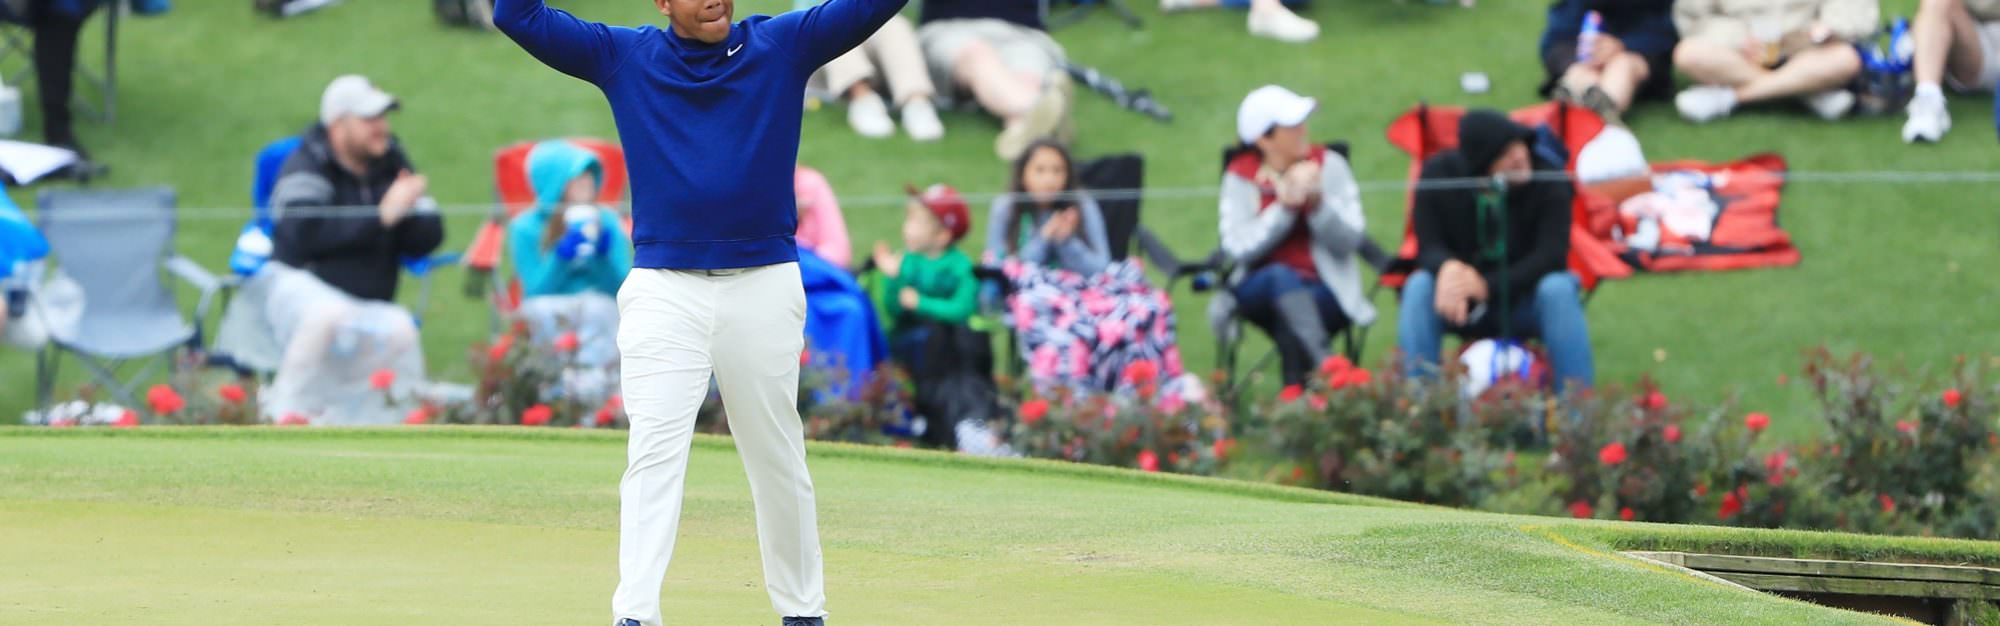 Quick 9: Memorable moments at Sawgrass' 17th